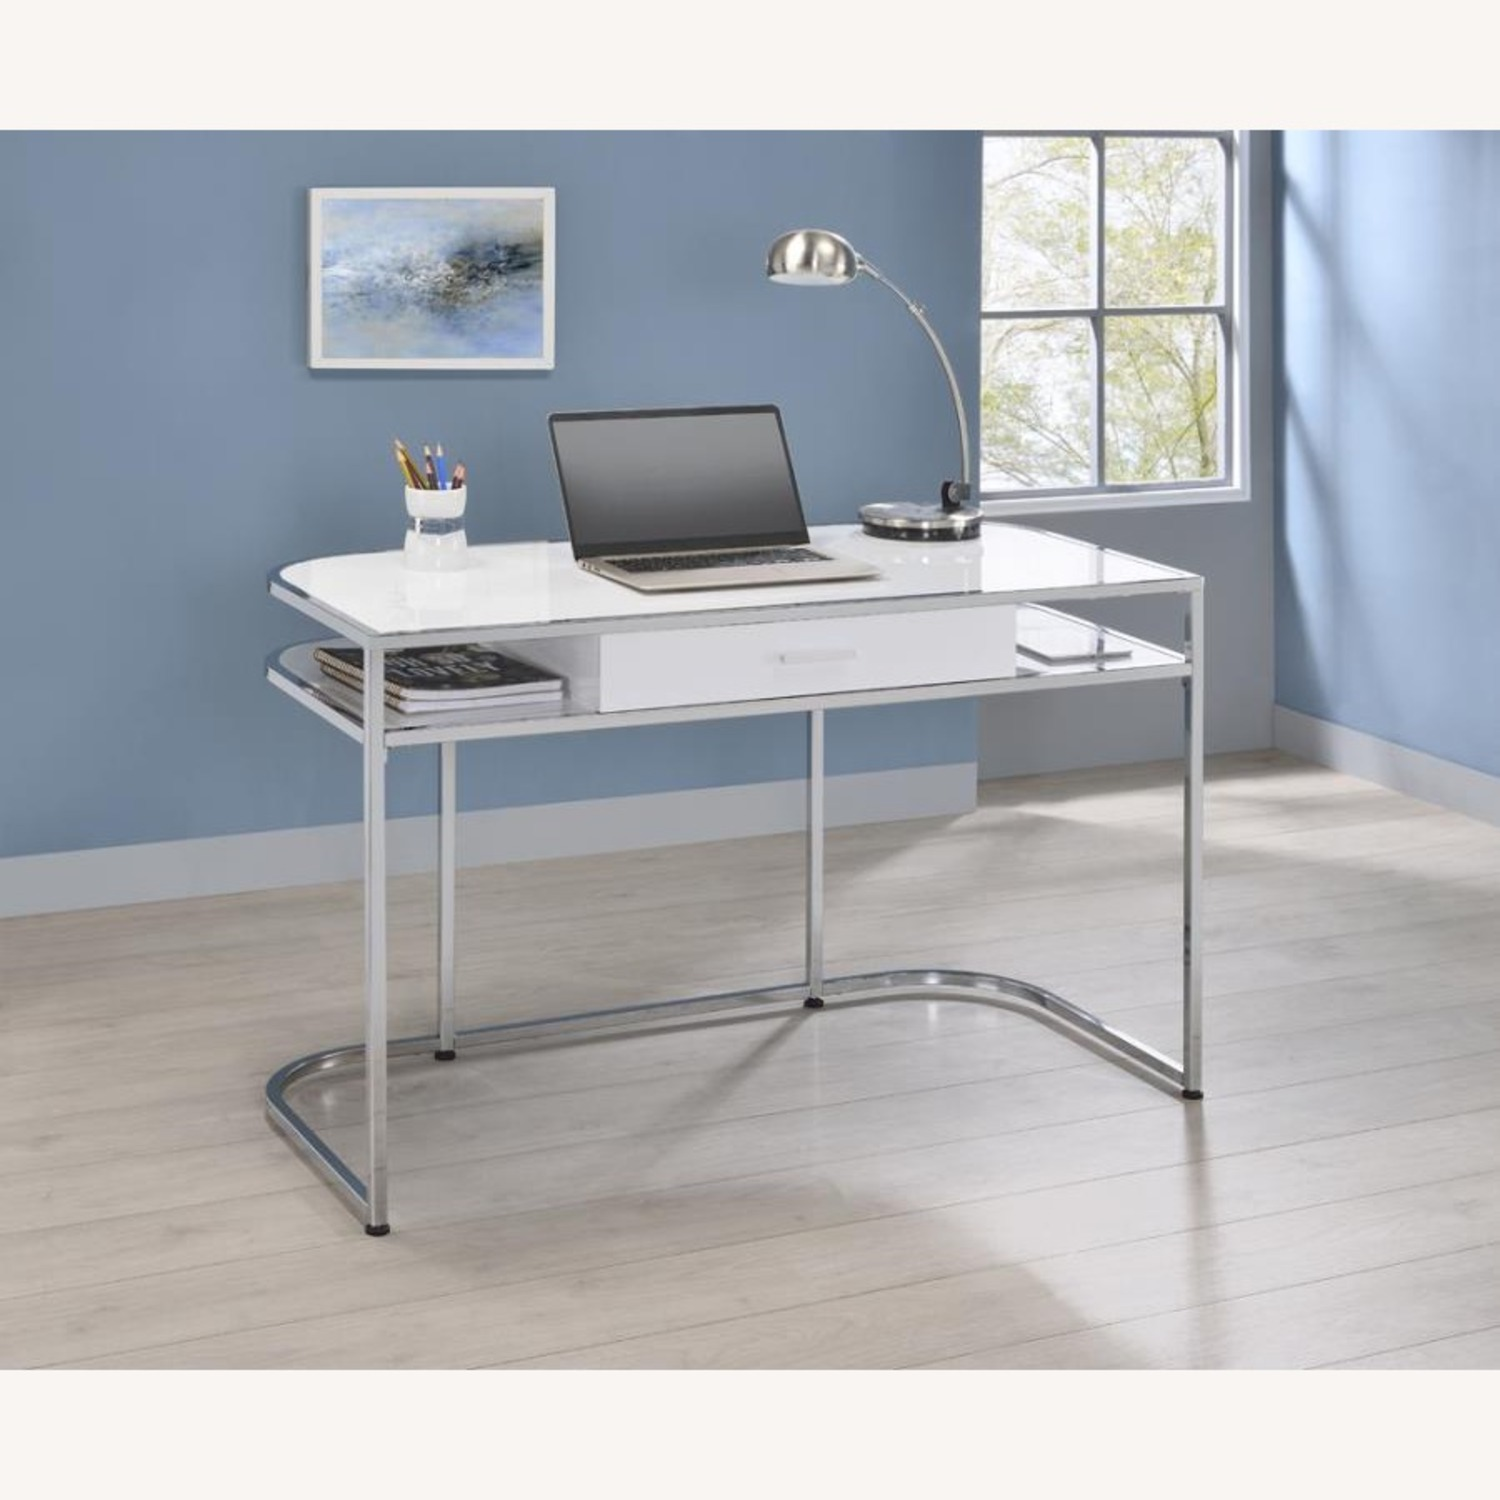 Writing Desk In White High Gloss Lacquer Finish - image-9